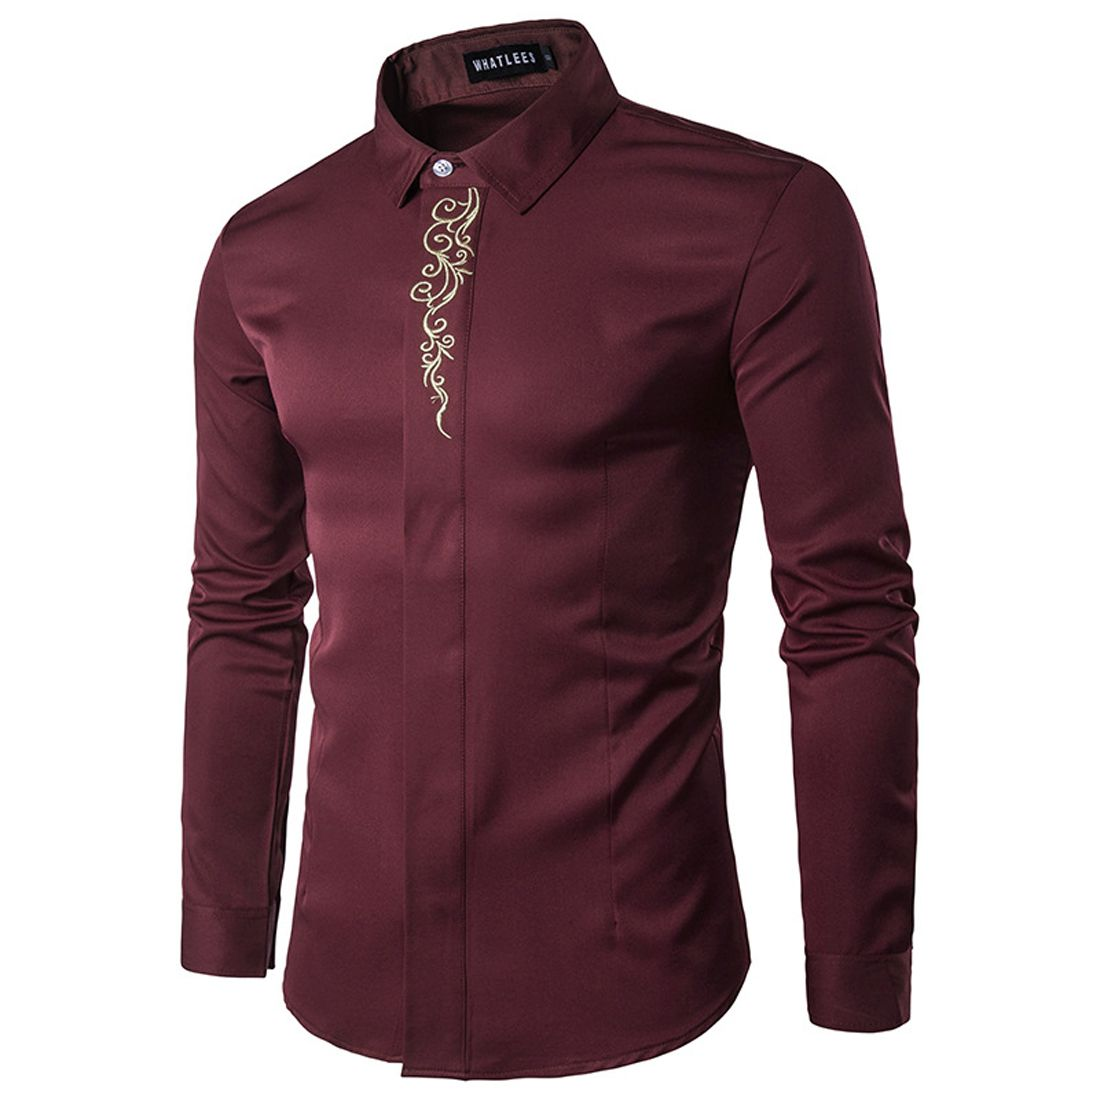 Gold Embroidery Printed Brand Shirt Men Long Sleeve Turn Down Collar Gentleman Tuxedo Shirts Chemise Homme 2017 Solid Camisas